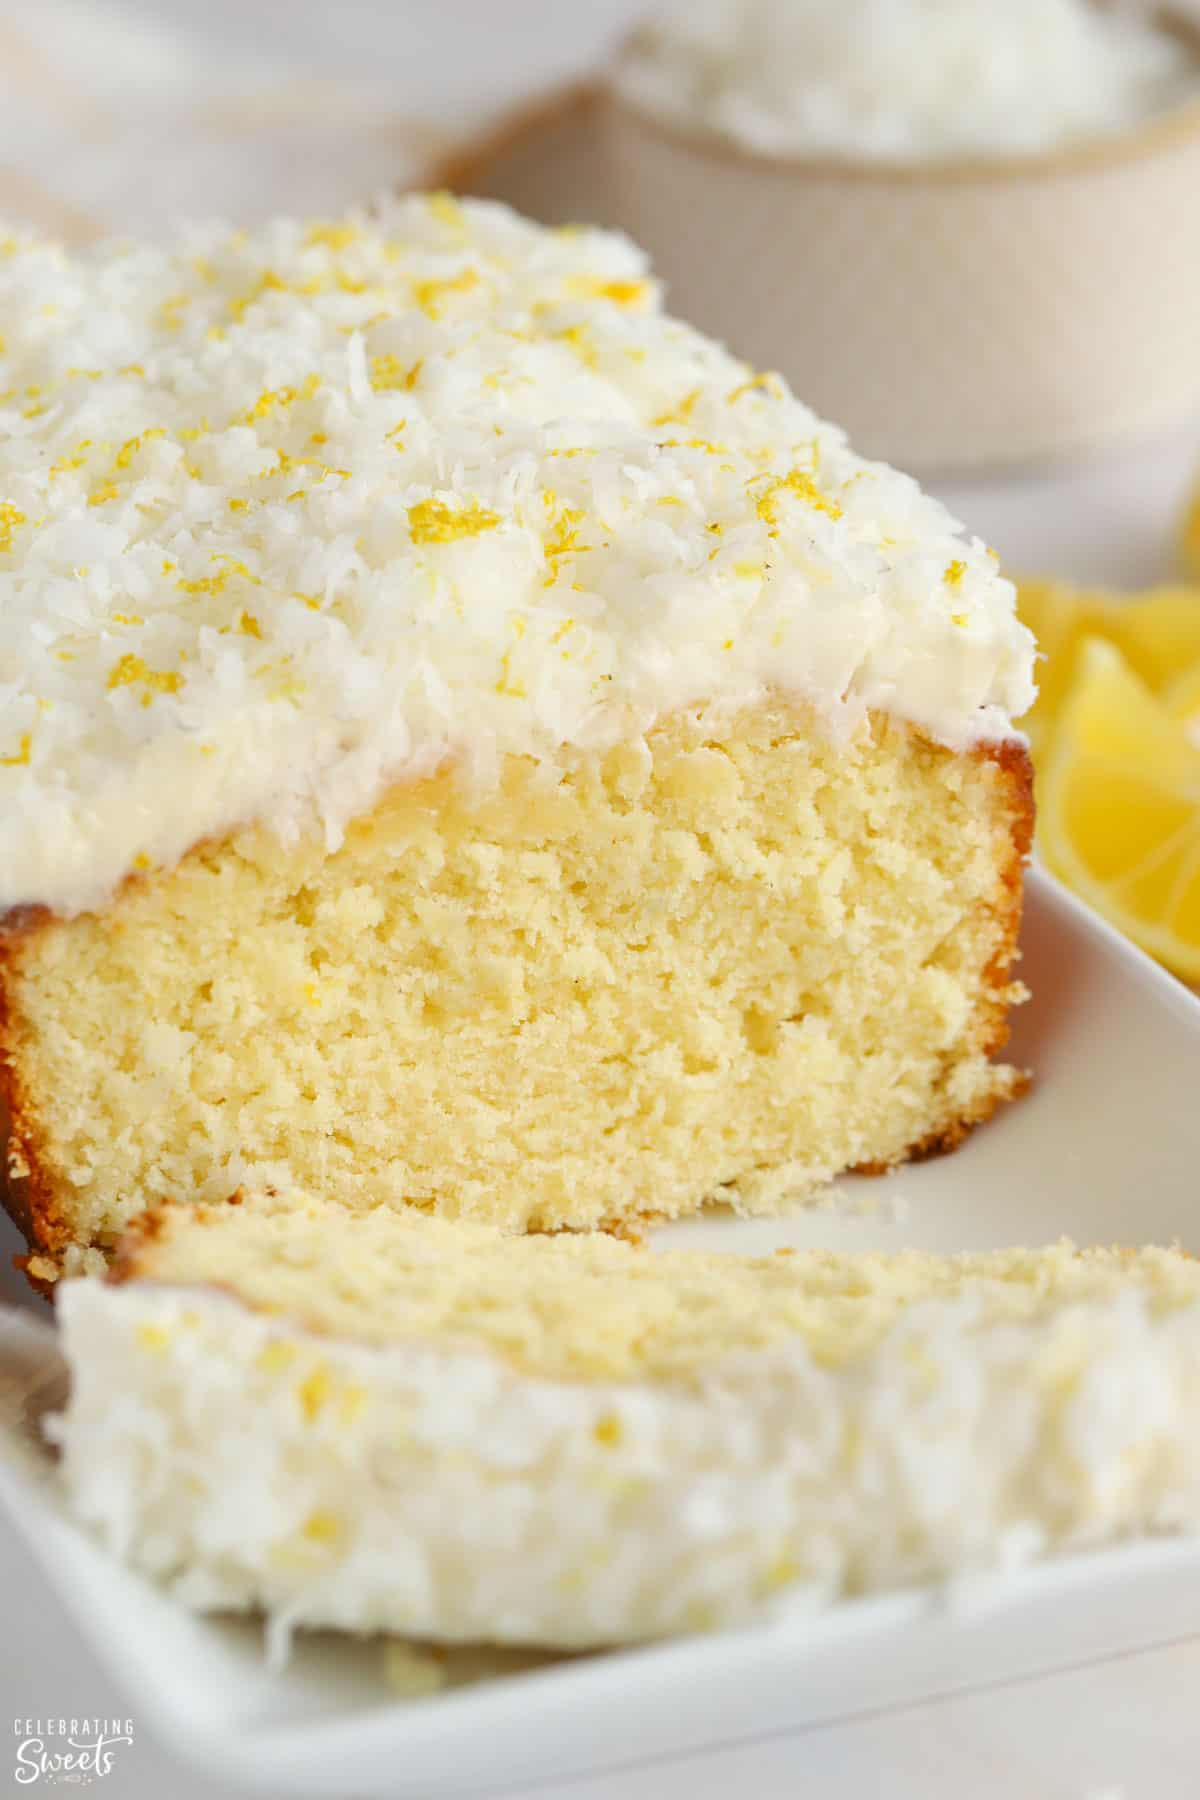 Lemon Coconut loaf cake topped with frosting and shredded coconut